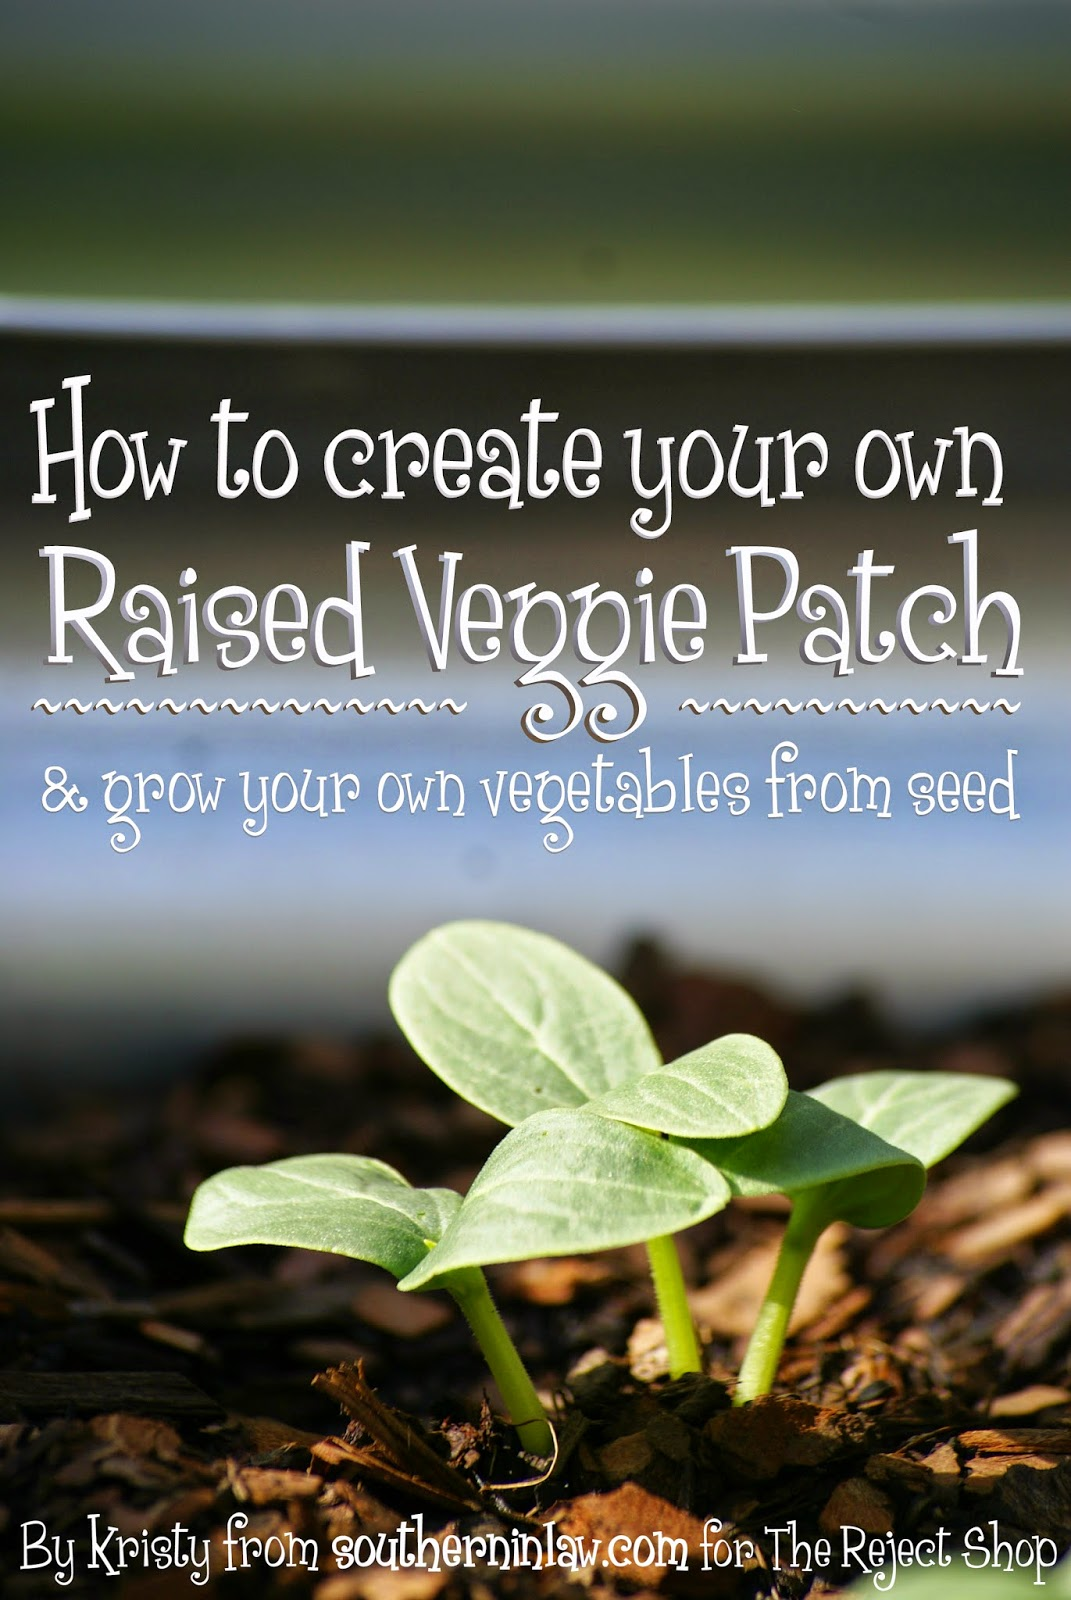 How to Make Your Own Raised Veggie Patch and Grow Your Own Vegetables from Seed